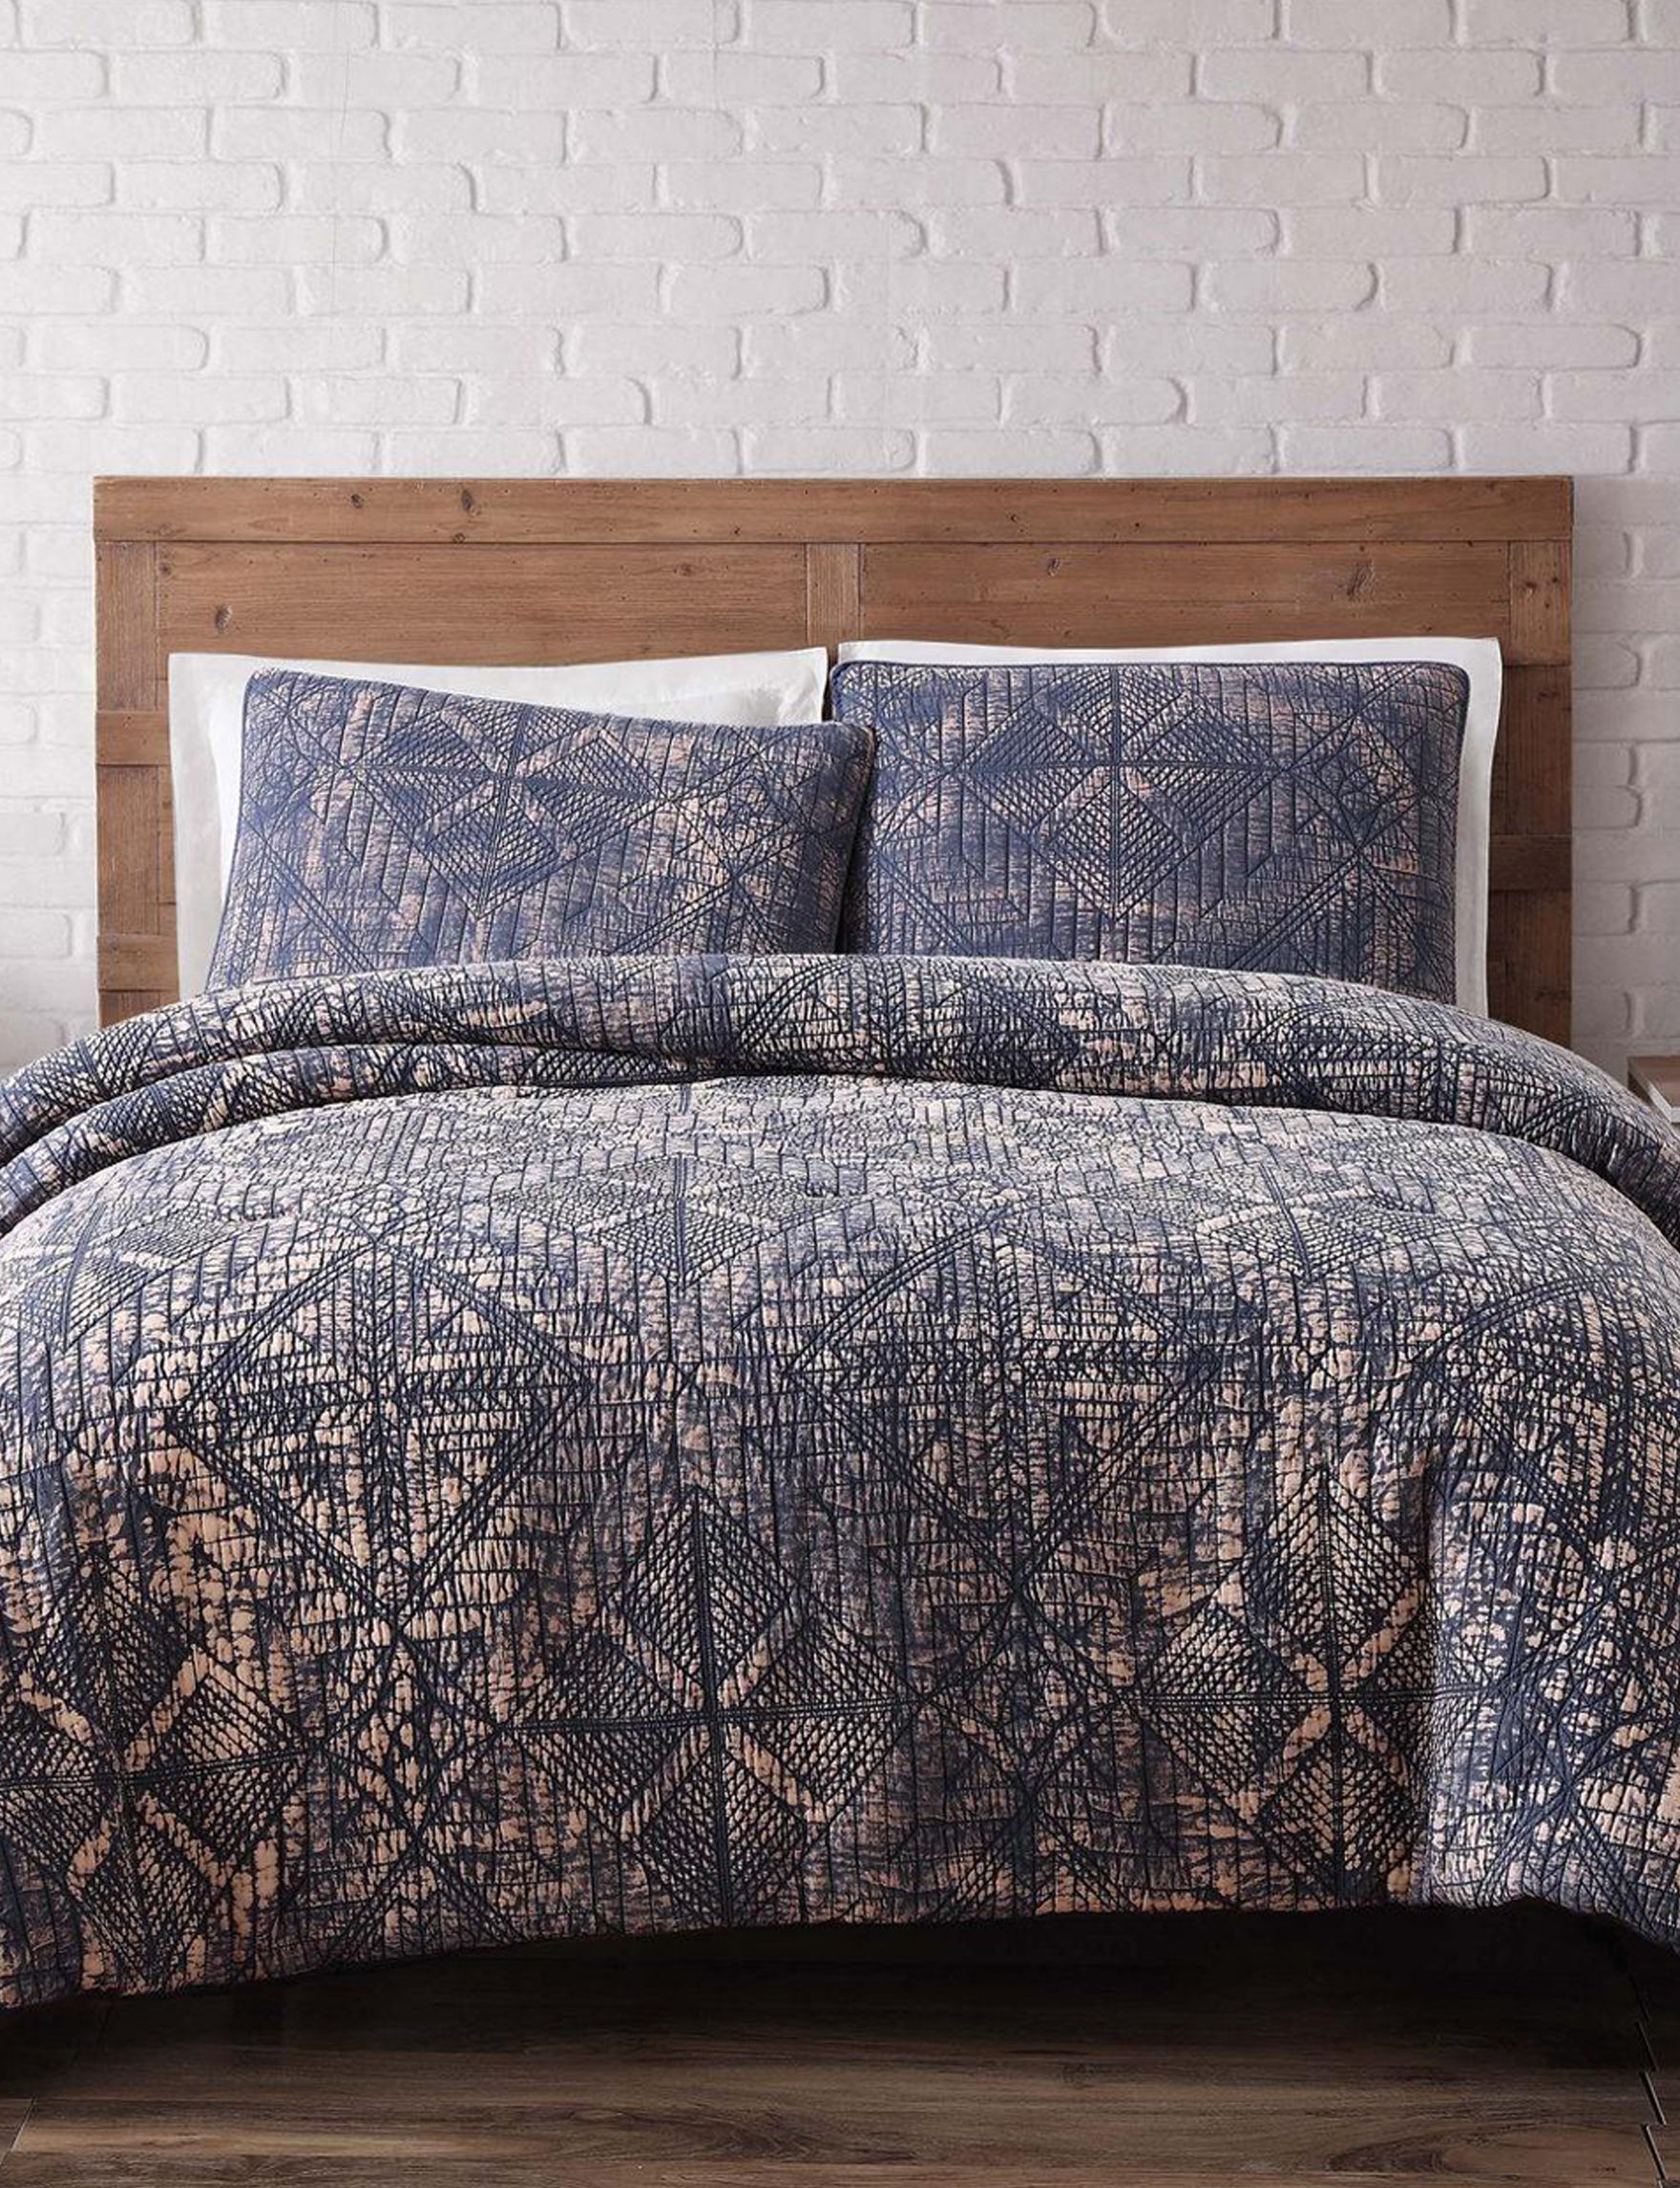 Brooklyn Loom Blue Comforters & Comforter Sets